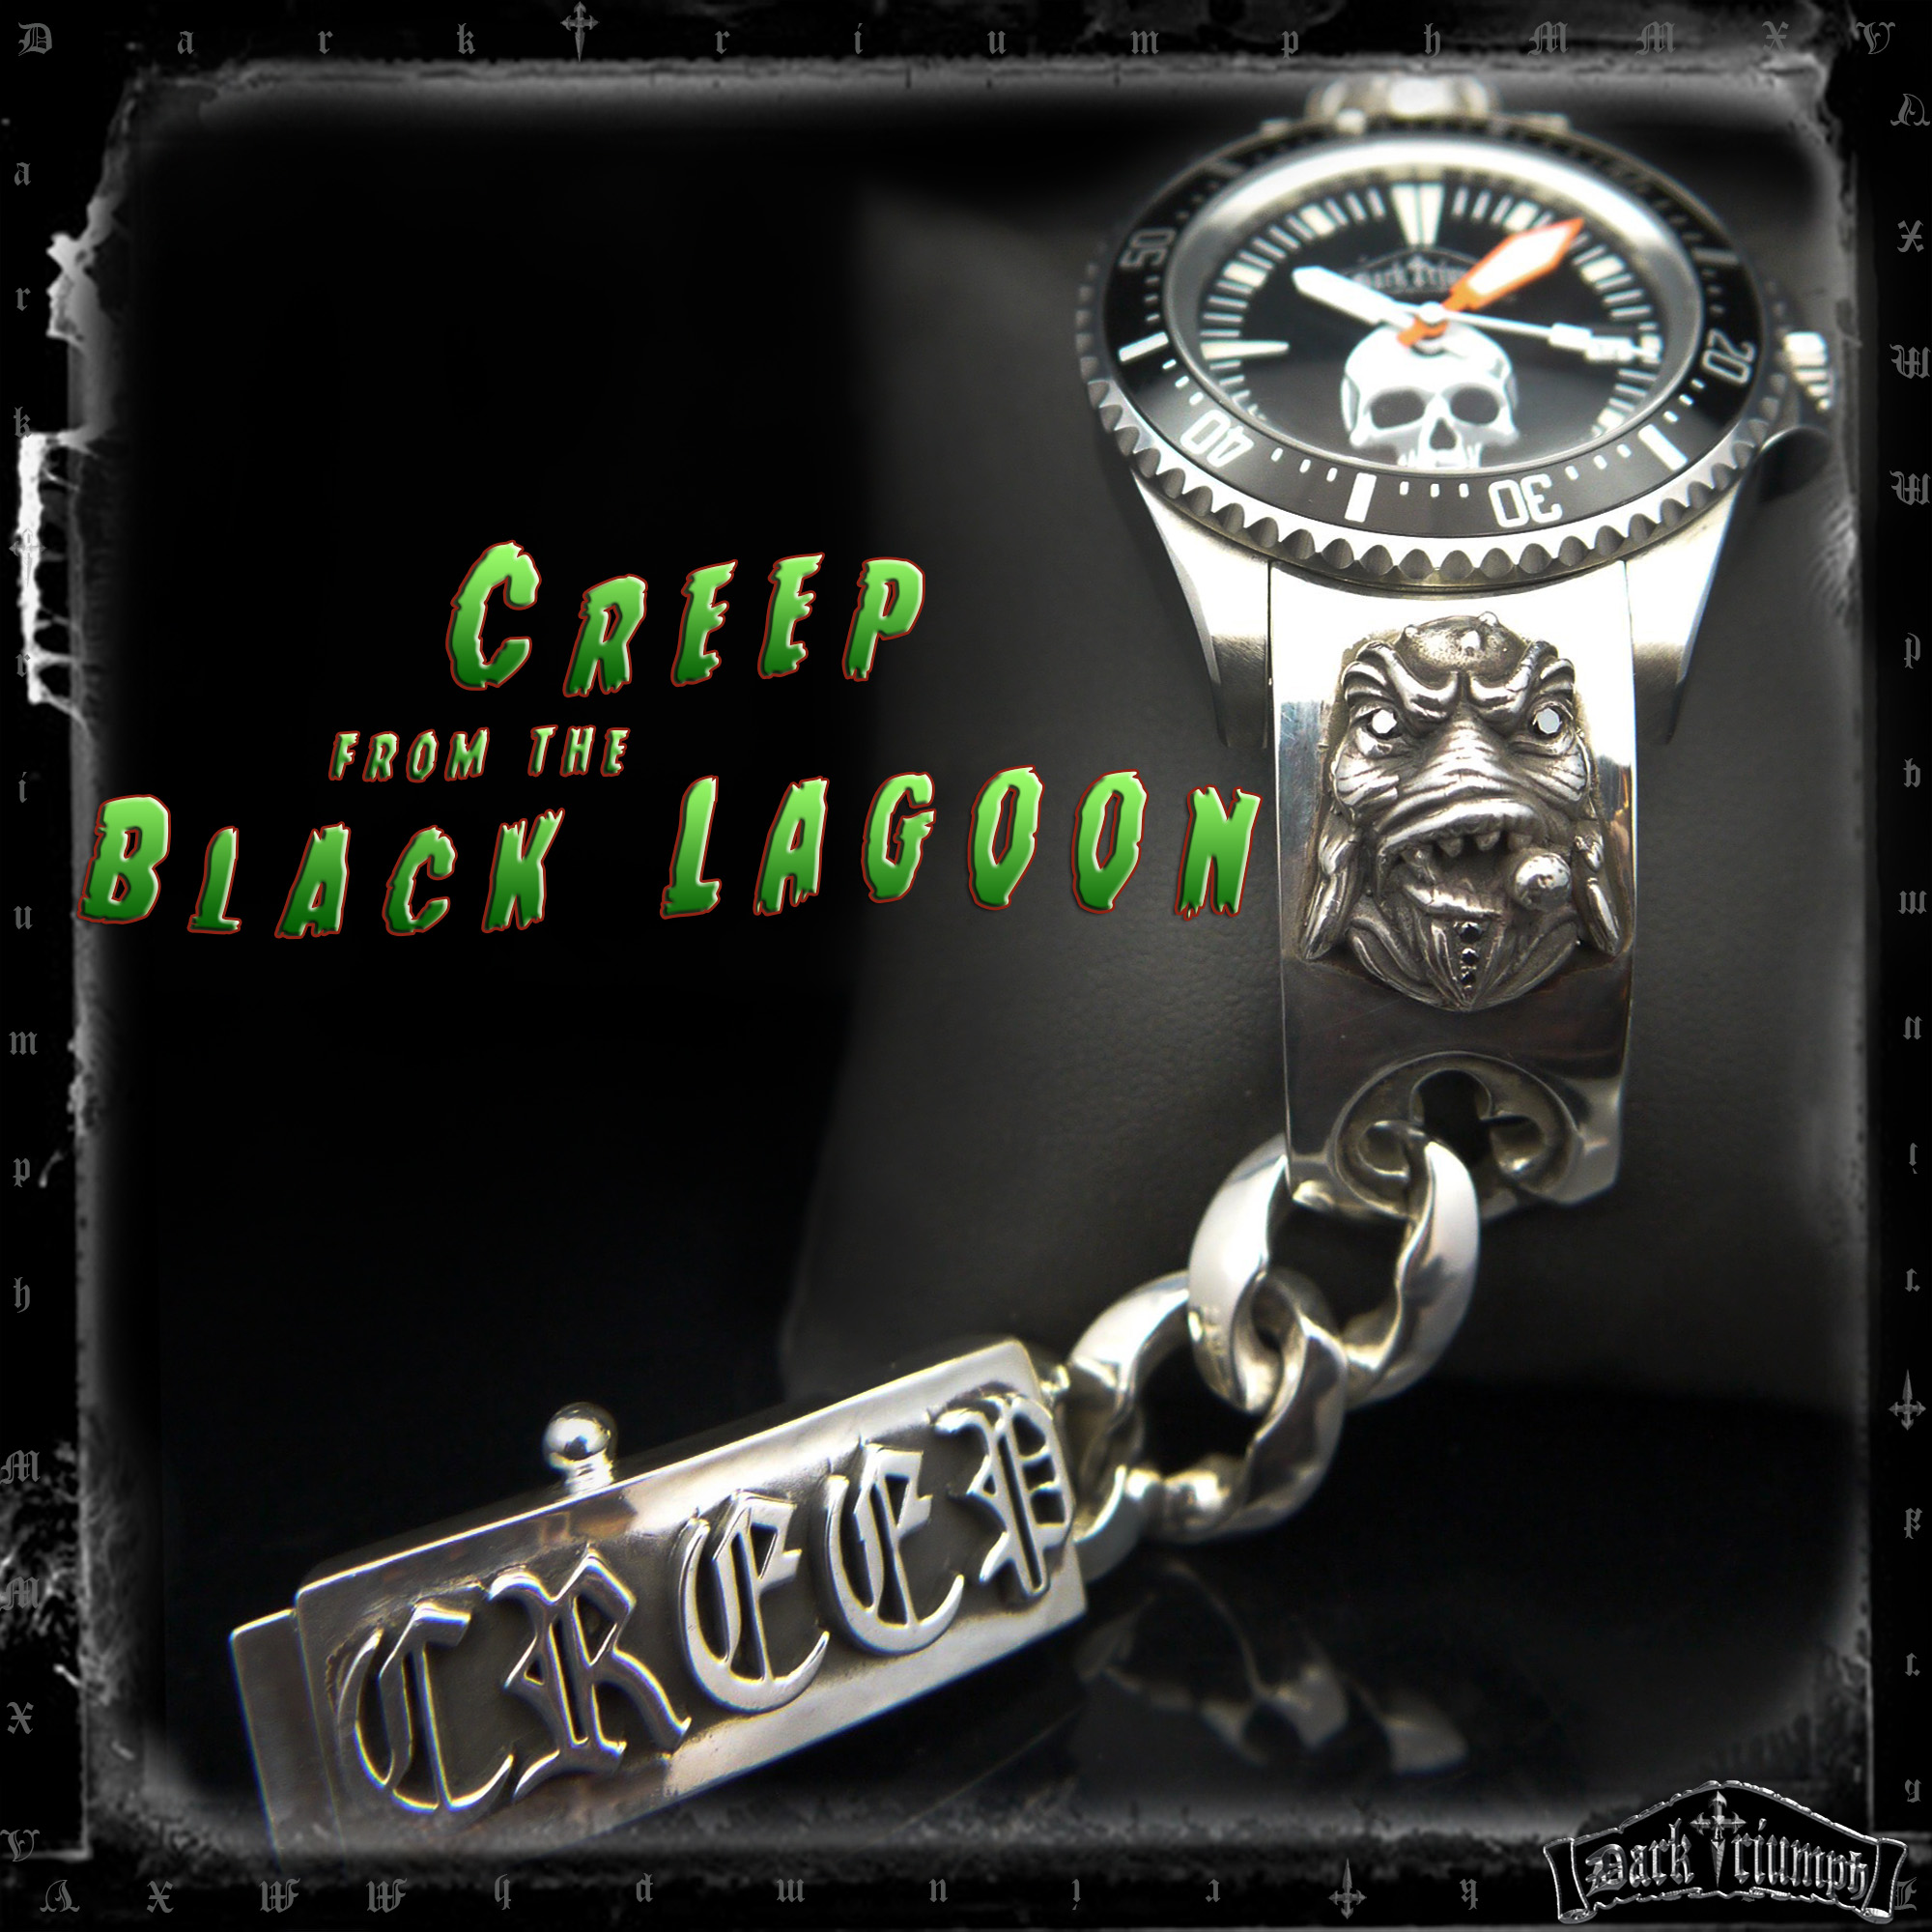 creep-black-lagoon-bucherer-titled.jpg